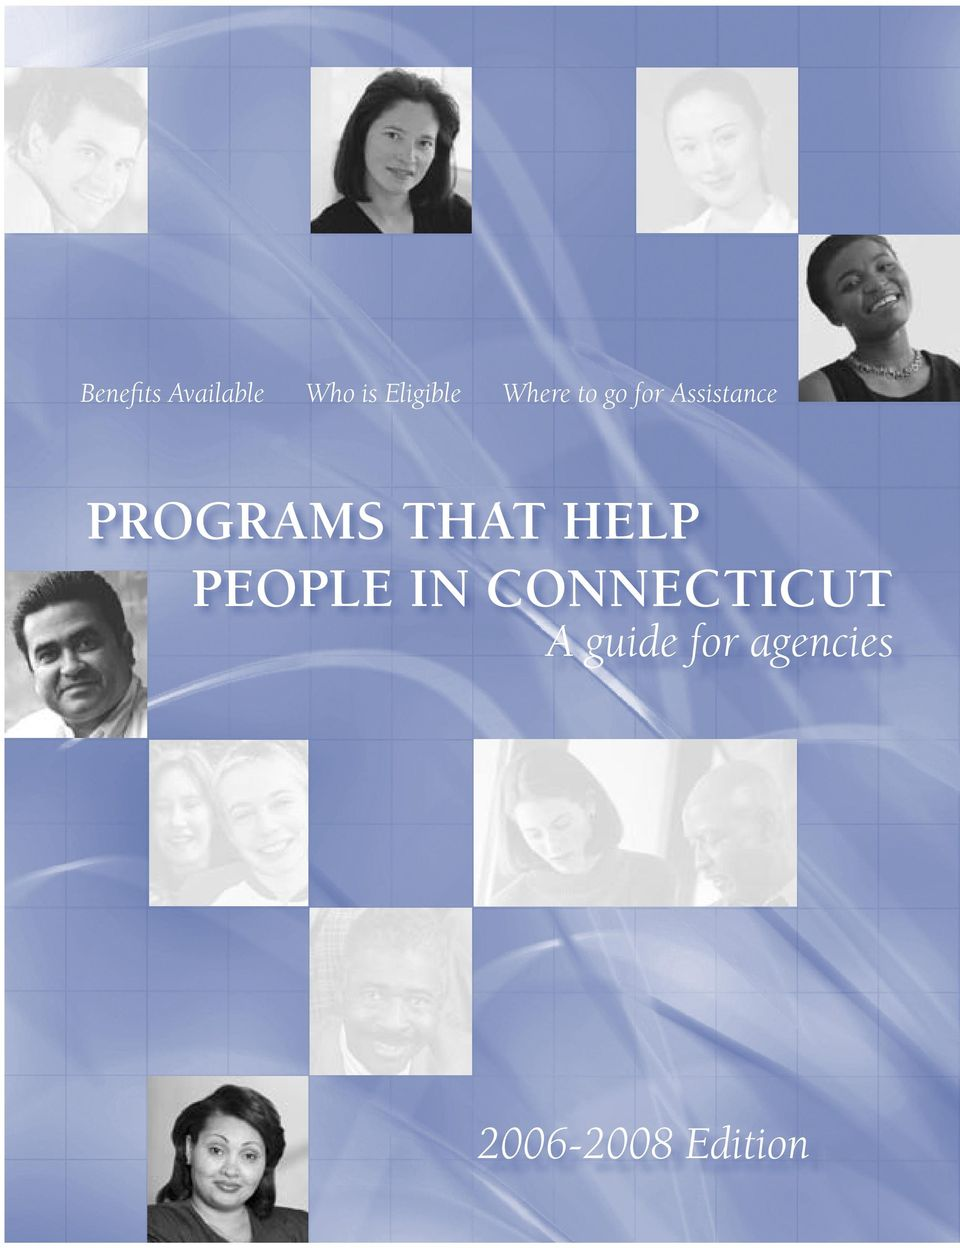 THAT HELP PEOPLE IN CONNECTICUT A